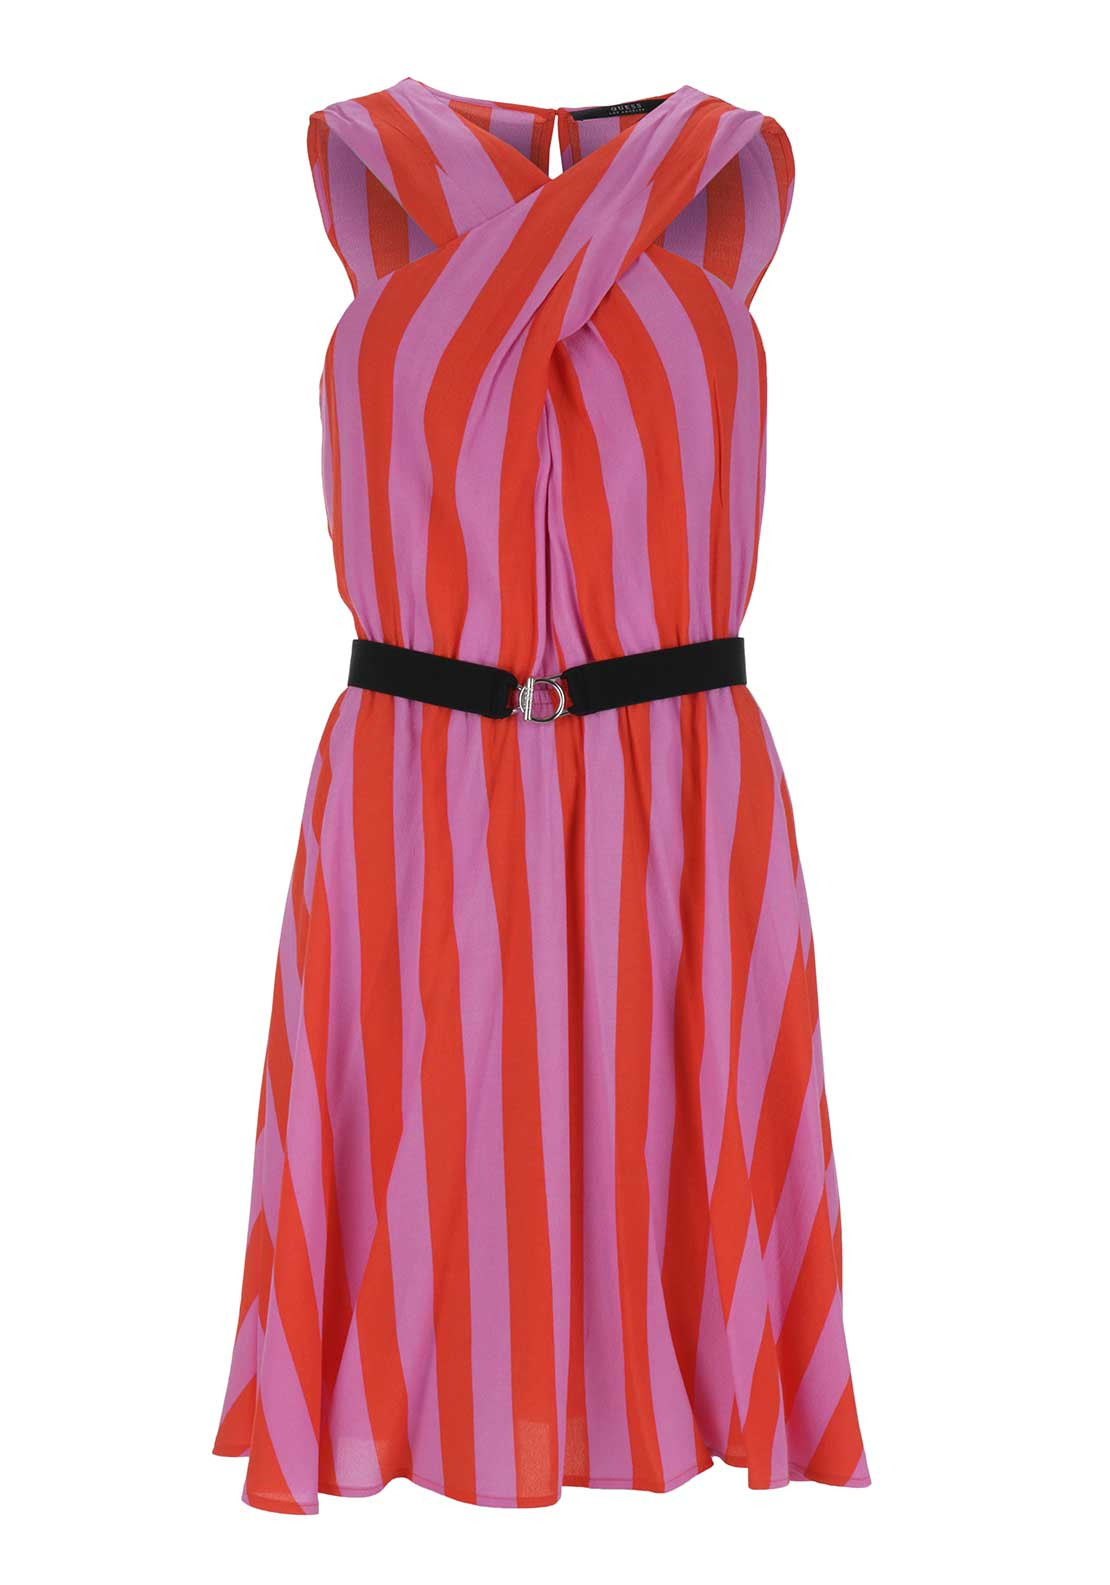 Guess Womens Hennie Striped Criss Coss Belted Dress, Pink